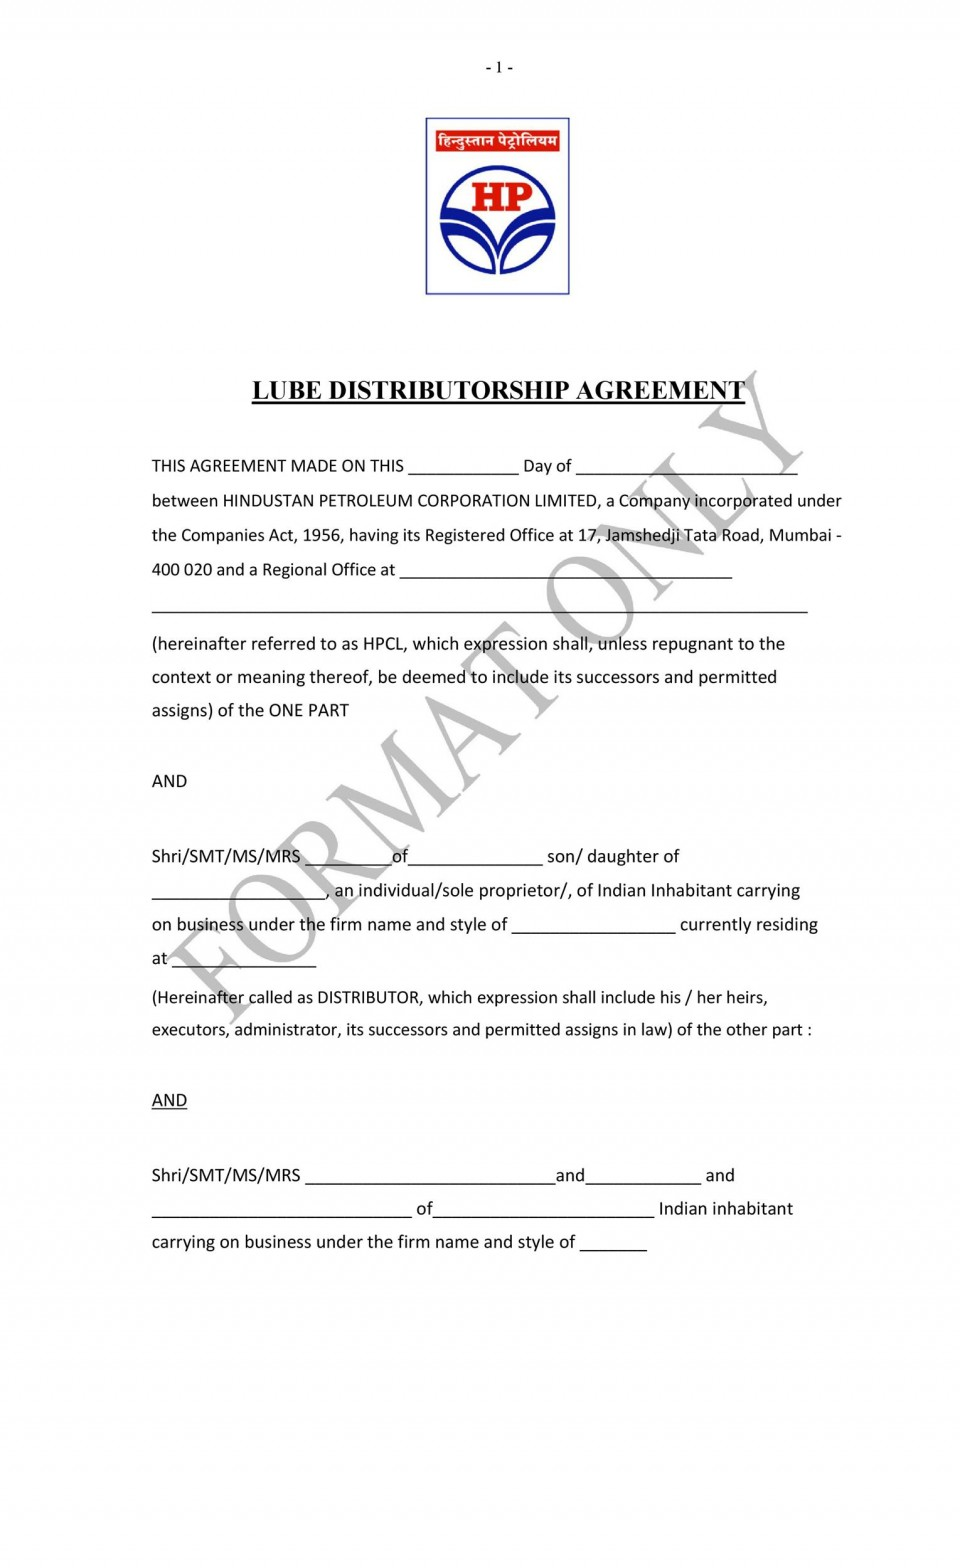 007 Incredible Exclusive Distribution Contract Template High Resolution  Agreement Australia Uk Non Free960